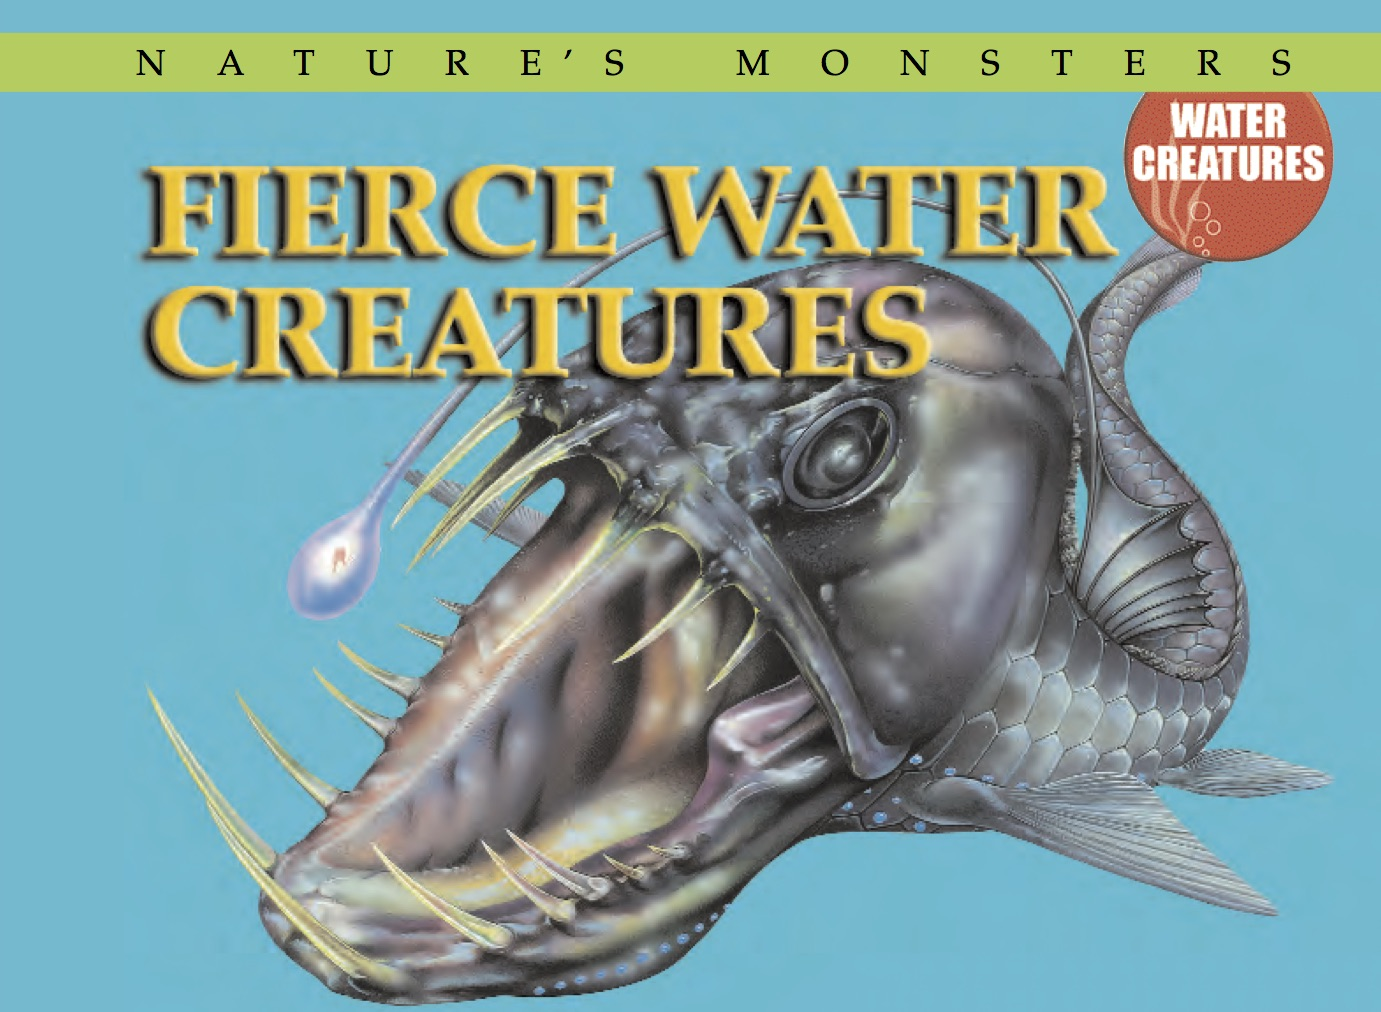 Nature's Monsters: Fierce Water Creatures